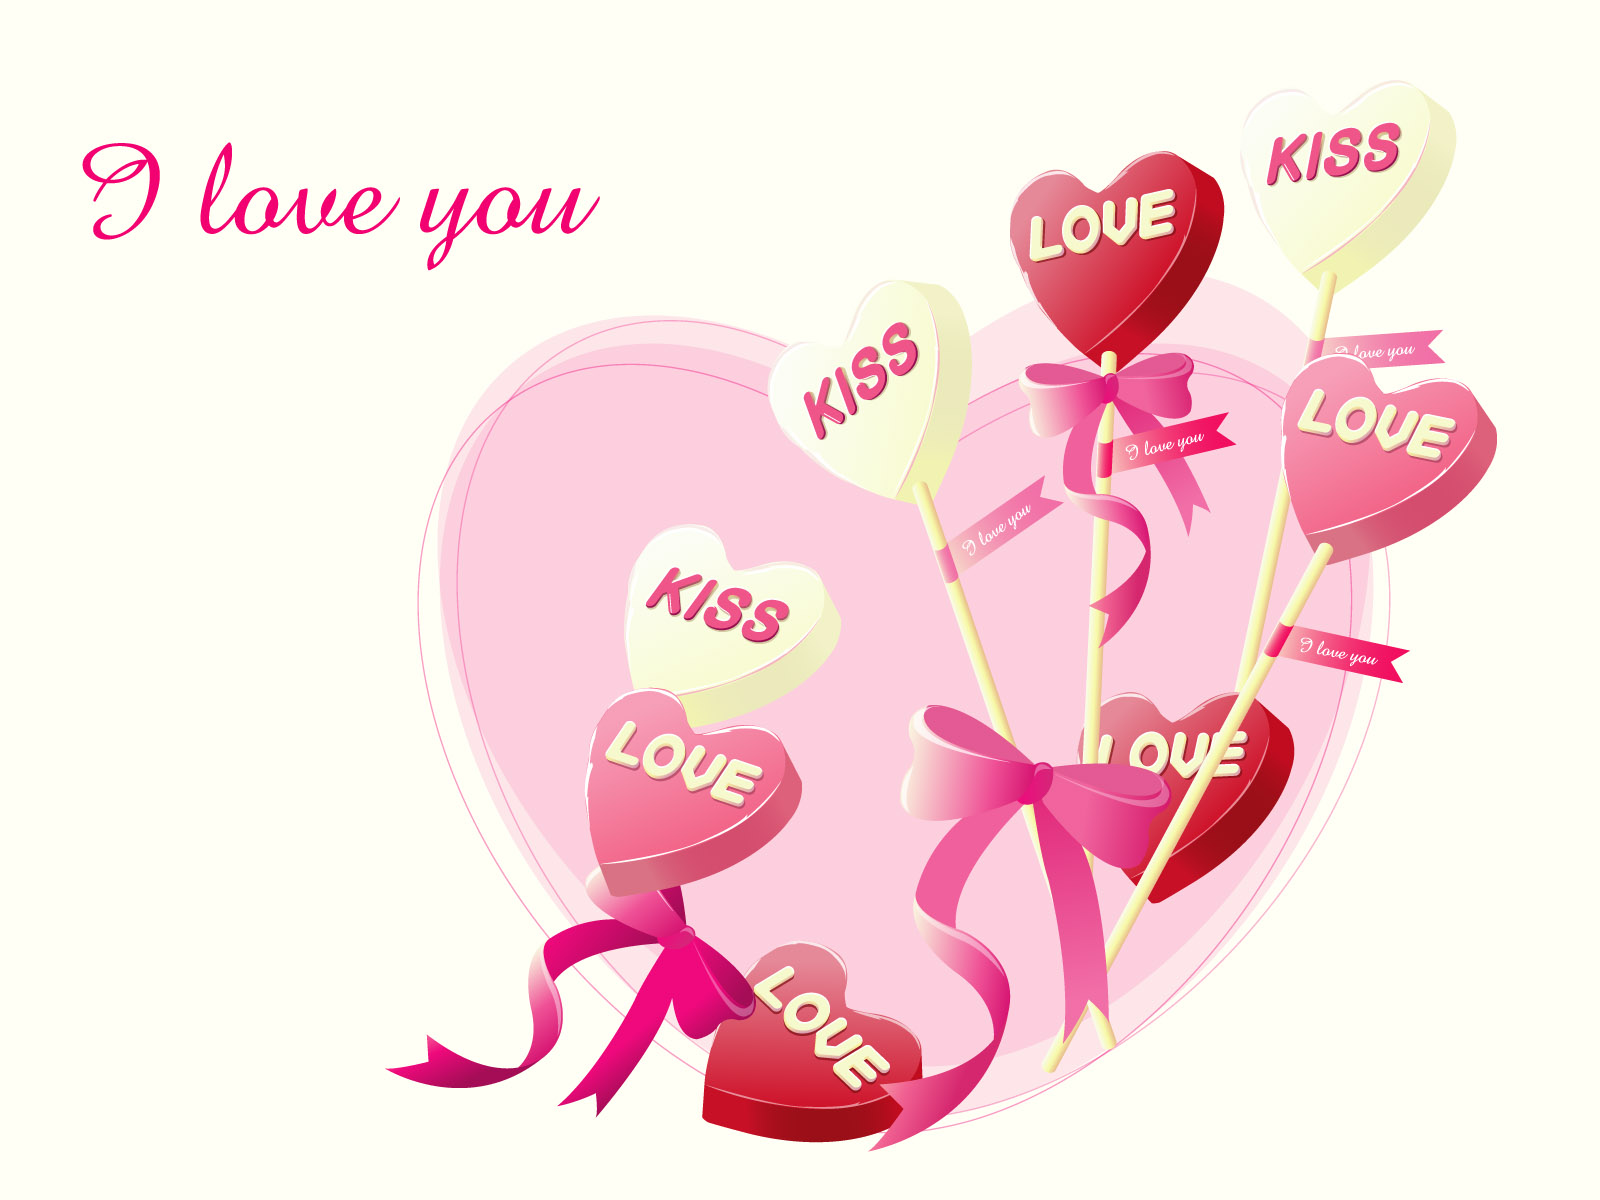 Love you kiss love pictures 2014